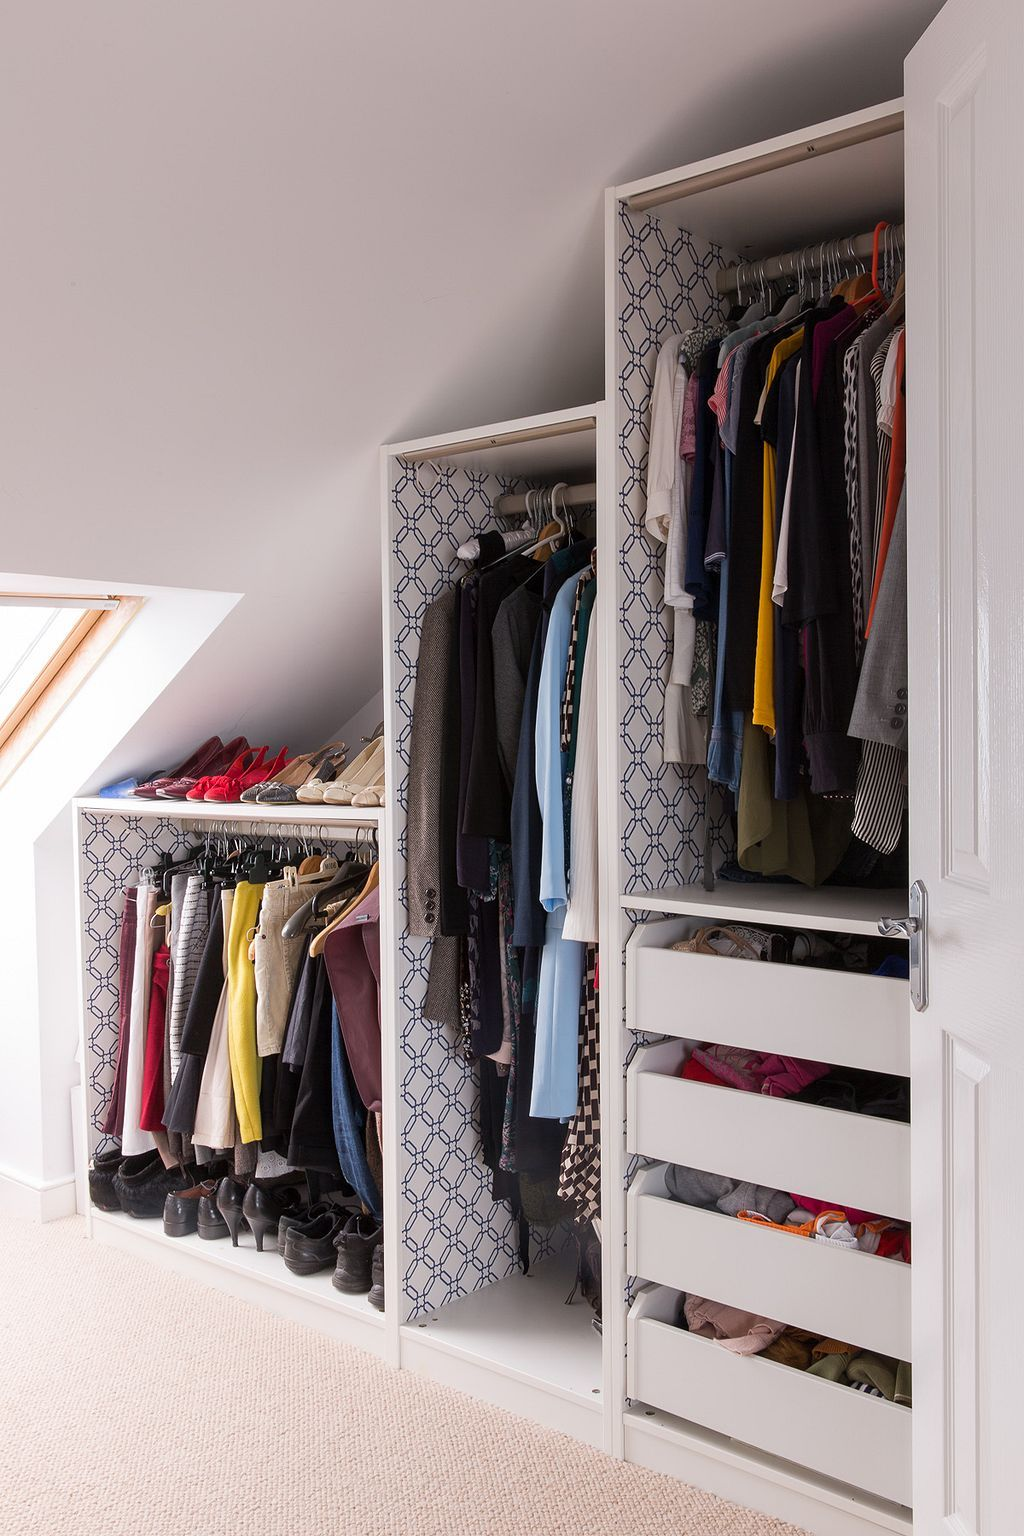 Create More Space In Your Homes With Ikea Pax Closet Ikea Pax